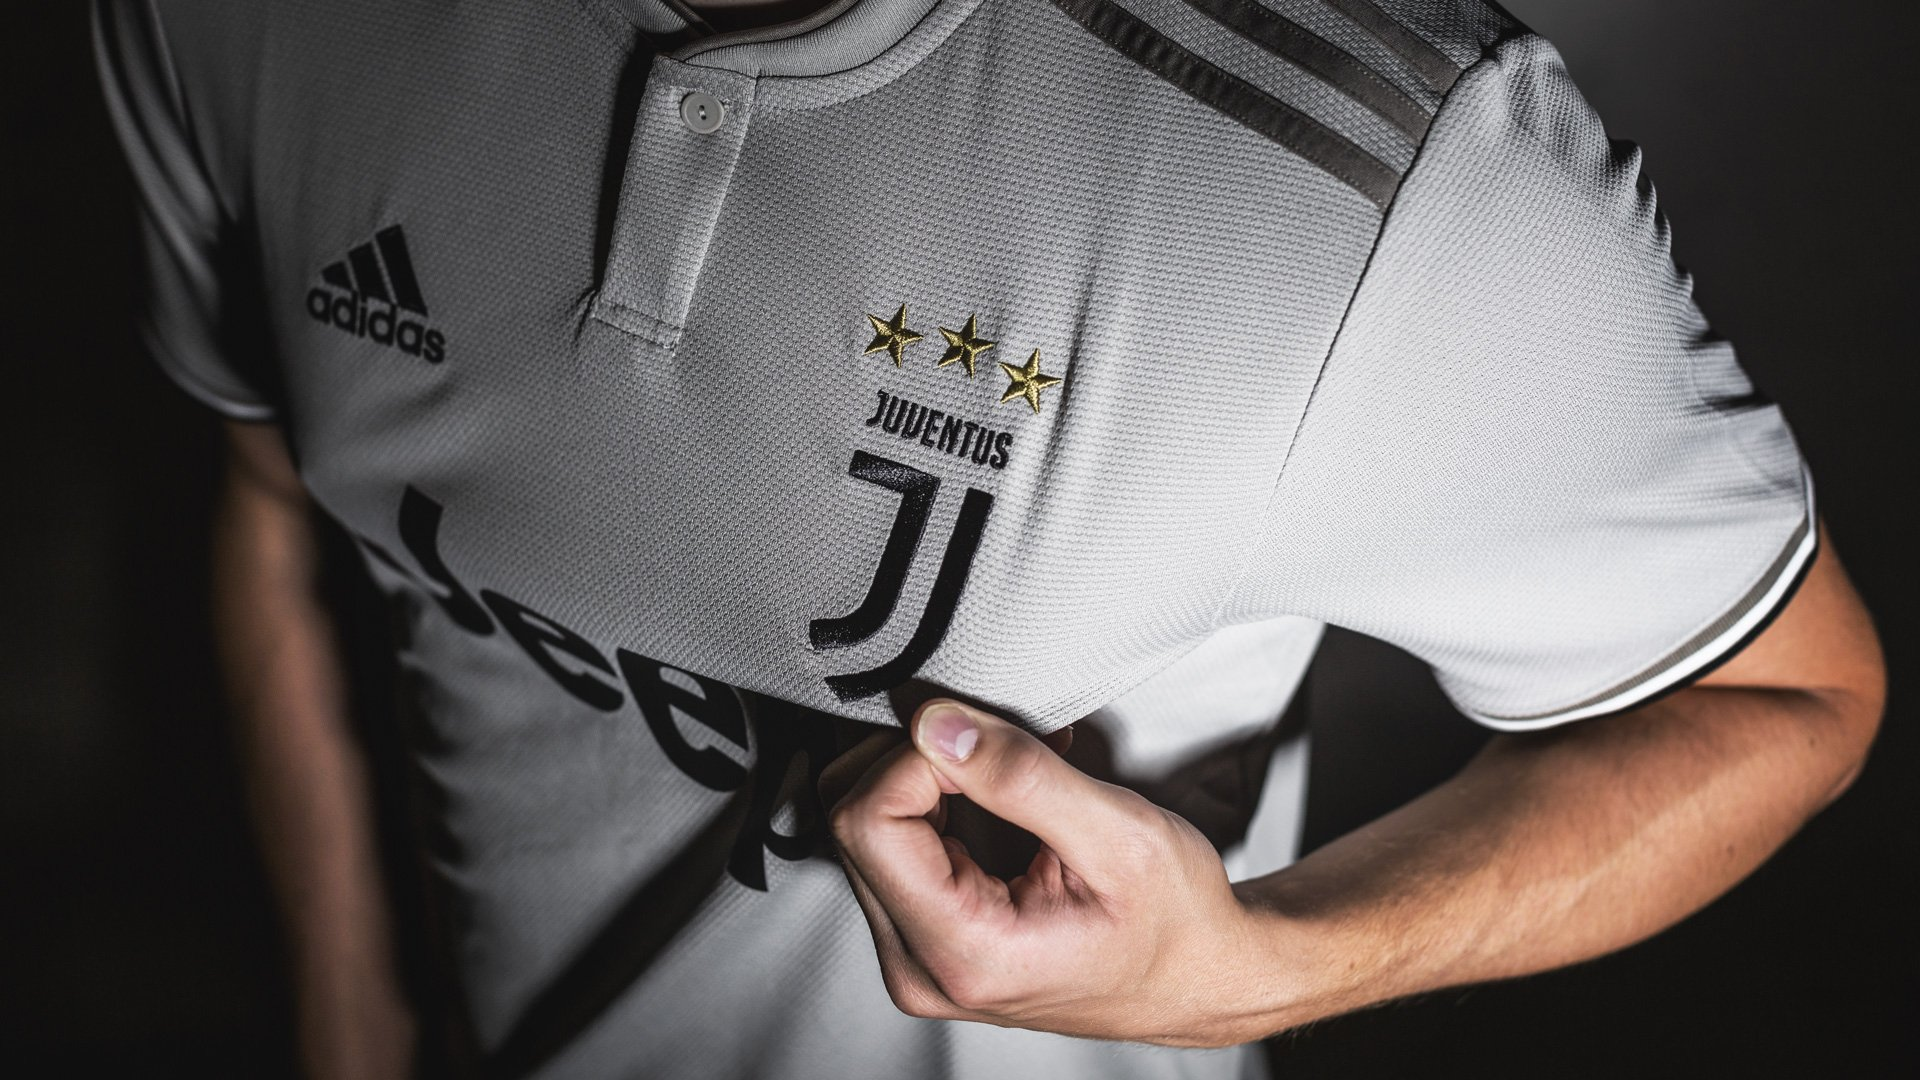 new product dbafe 4316f The new Juventus 2018/19 Away Shirt | Get it at Unisport